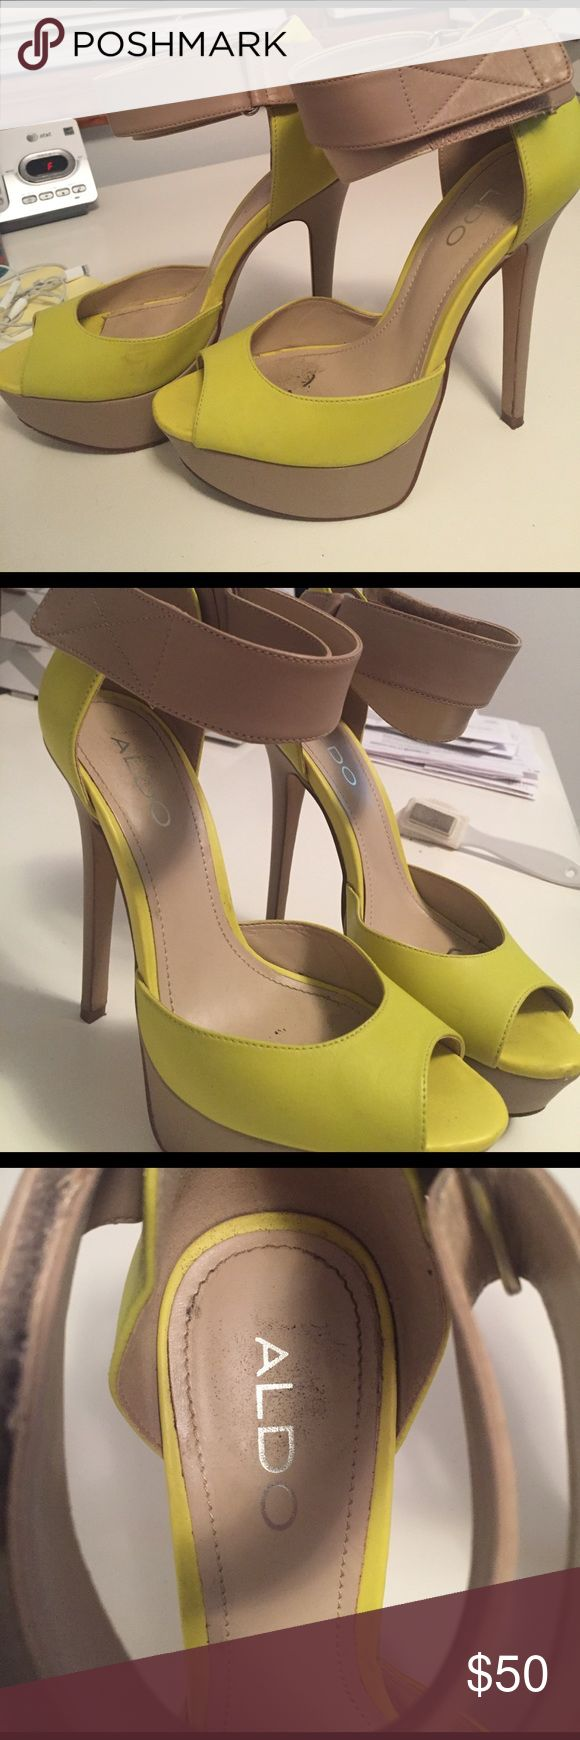 "Aldo neon green pumps These look great with an all white or nude outfit! 4.5"" heels Aldo Shoes Heels"